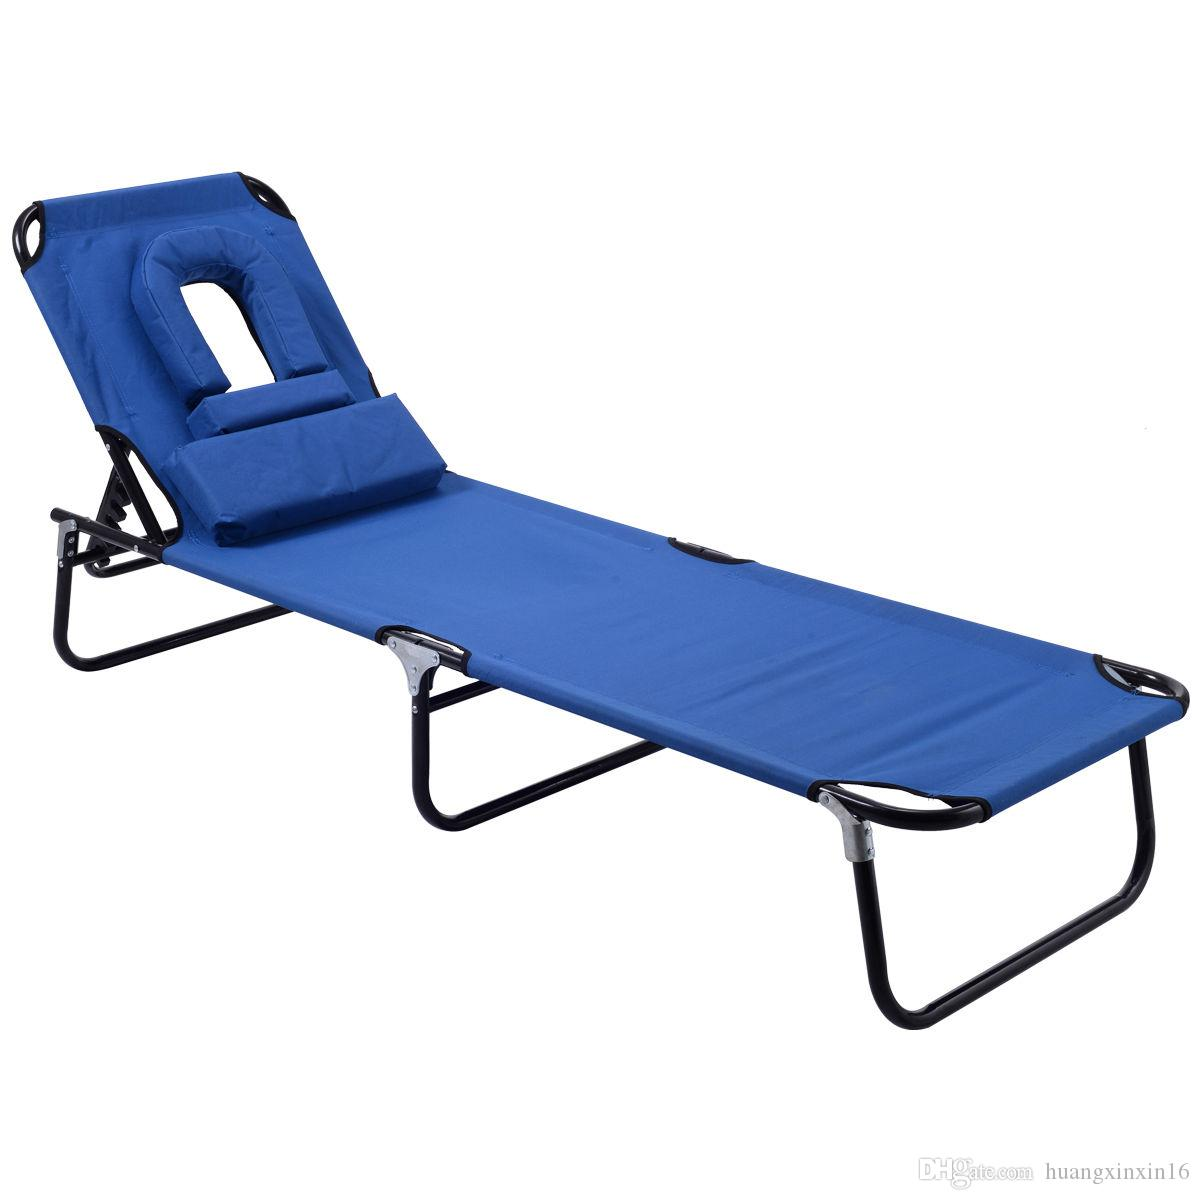 2018 foldable chaise lounge chair bed outdoor beach camping recliner pool yard from huangxinxin16 40 2 dhgate com